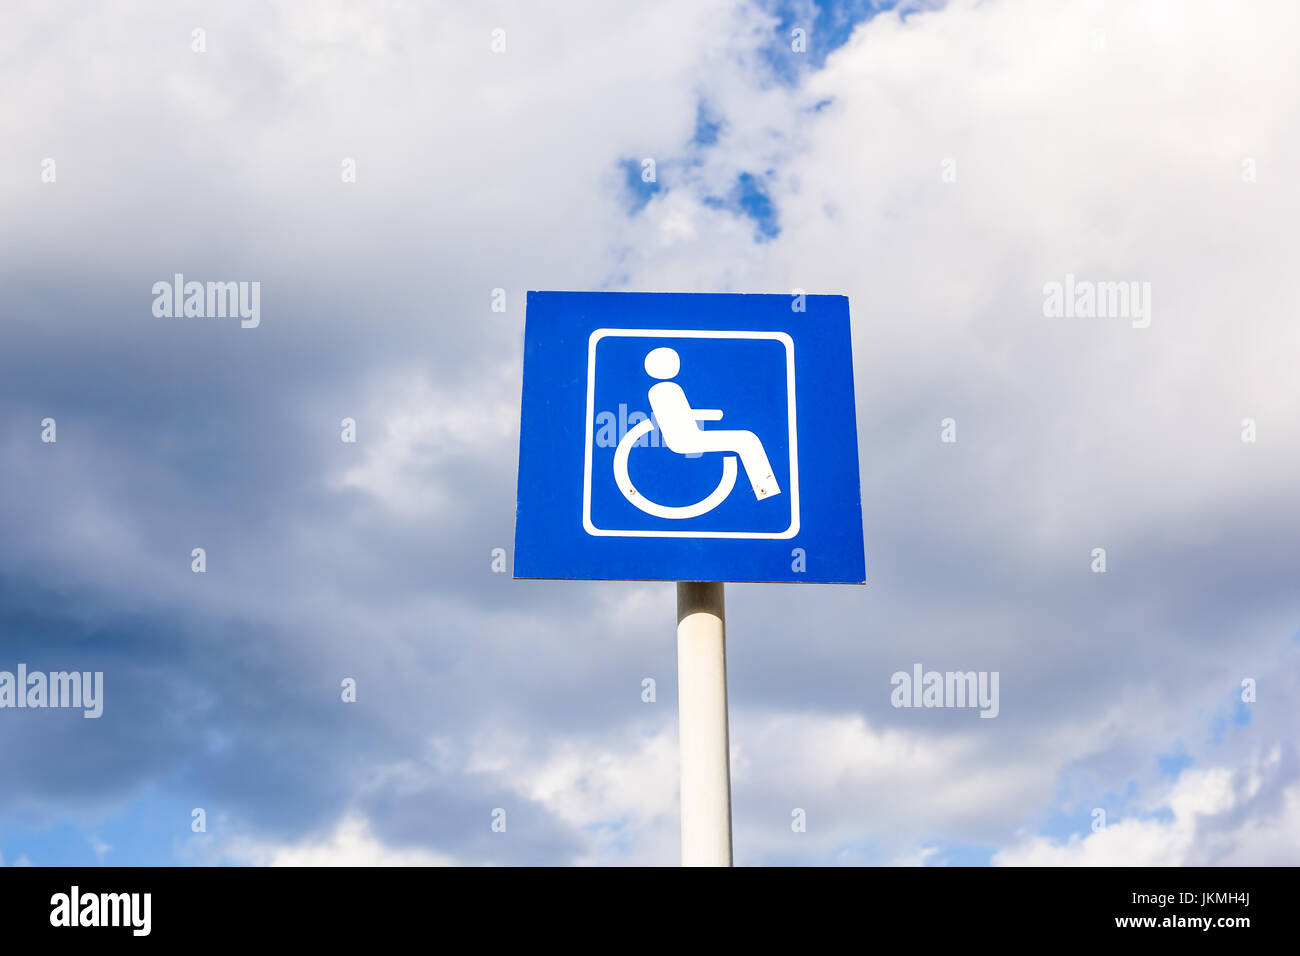 Parking sign for disabled peopleStock Photo